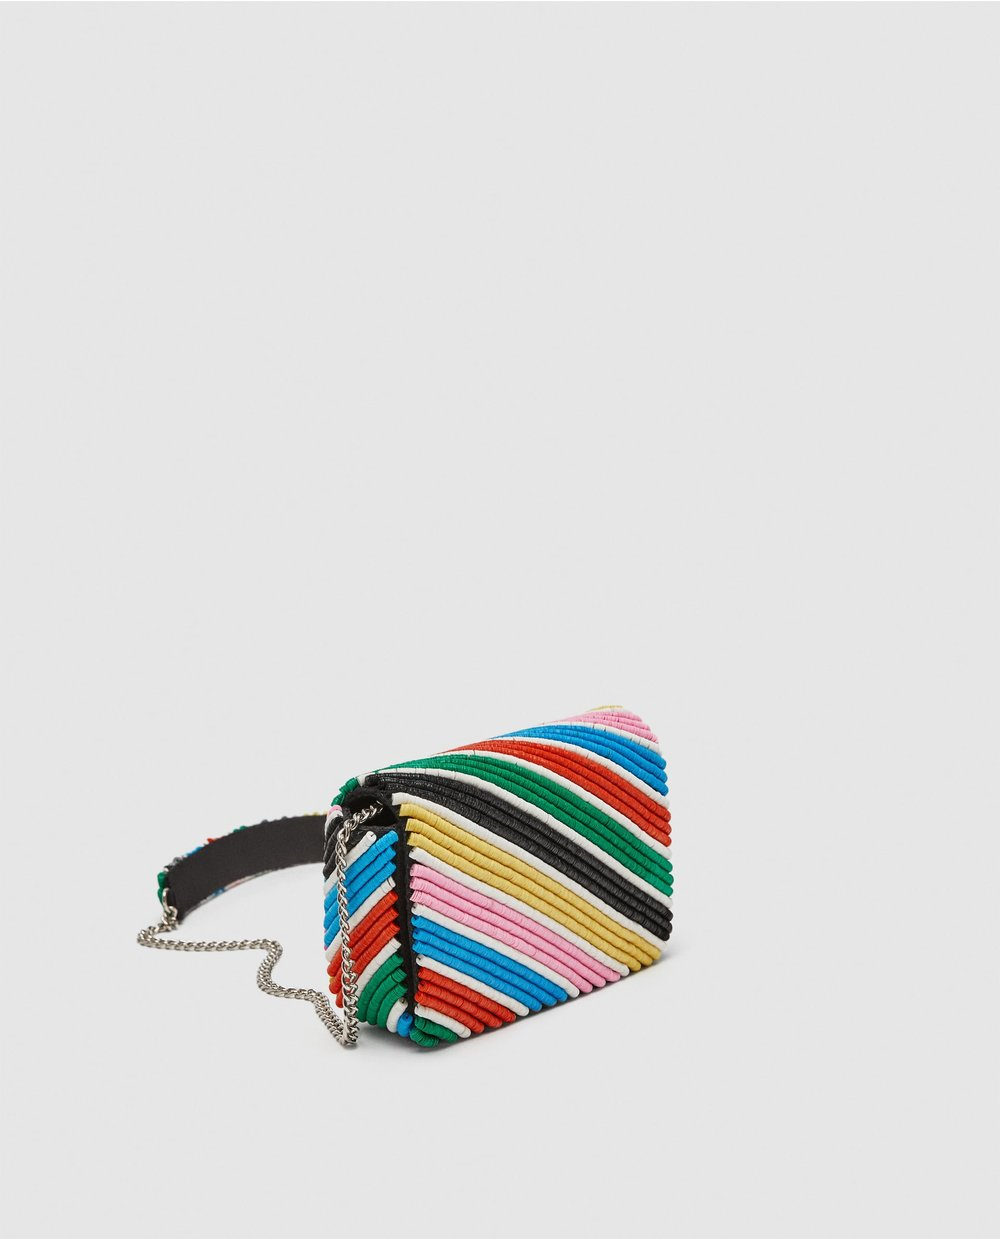 Zara_rainbow bag.jpg